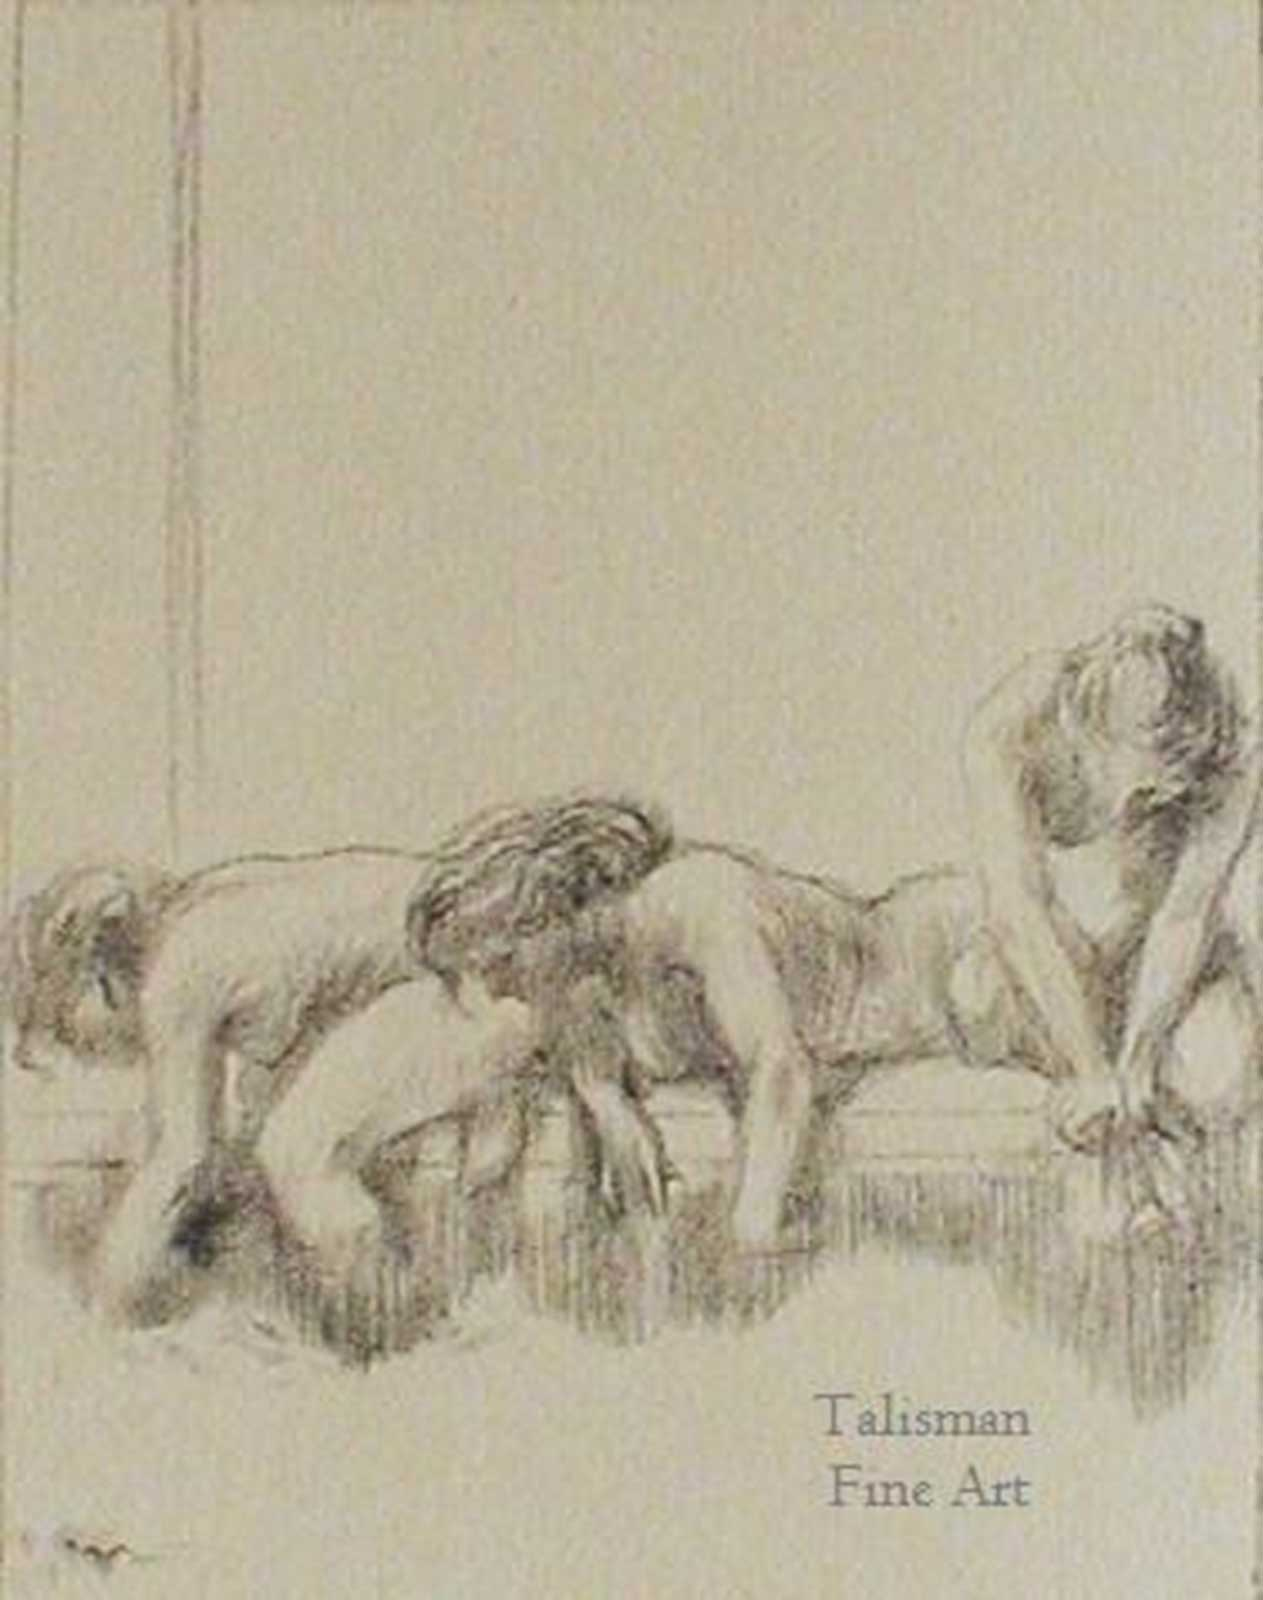 Talusman Fine Art Charles Haslewood Shannon lithograph - 'Repeated Bend' 1892. (We have more work by Shannon on this w